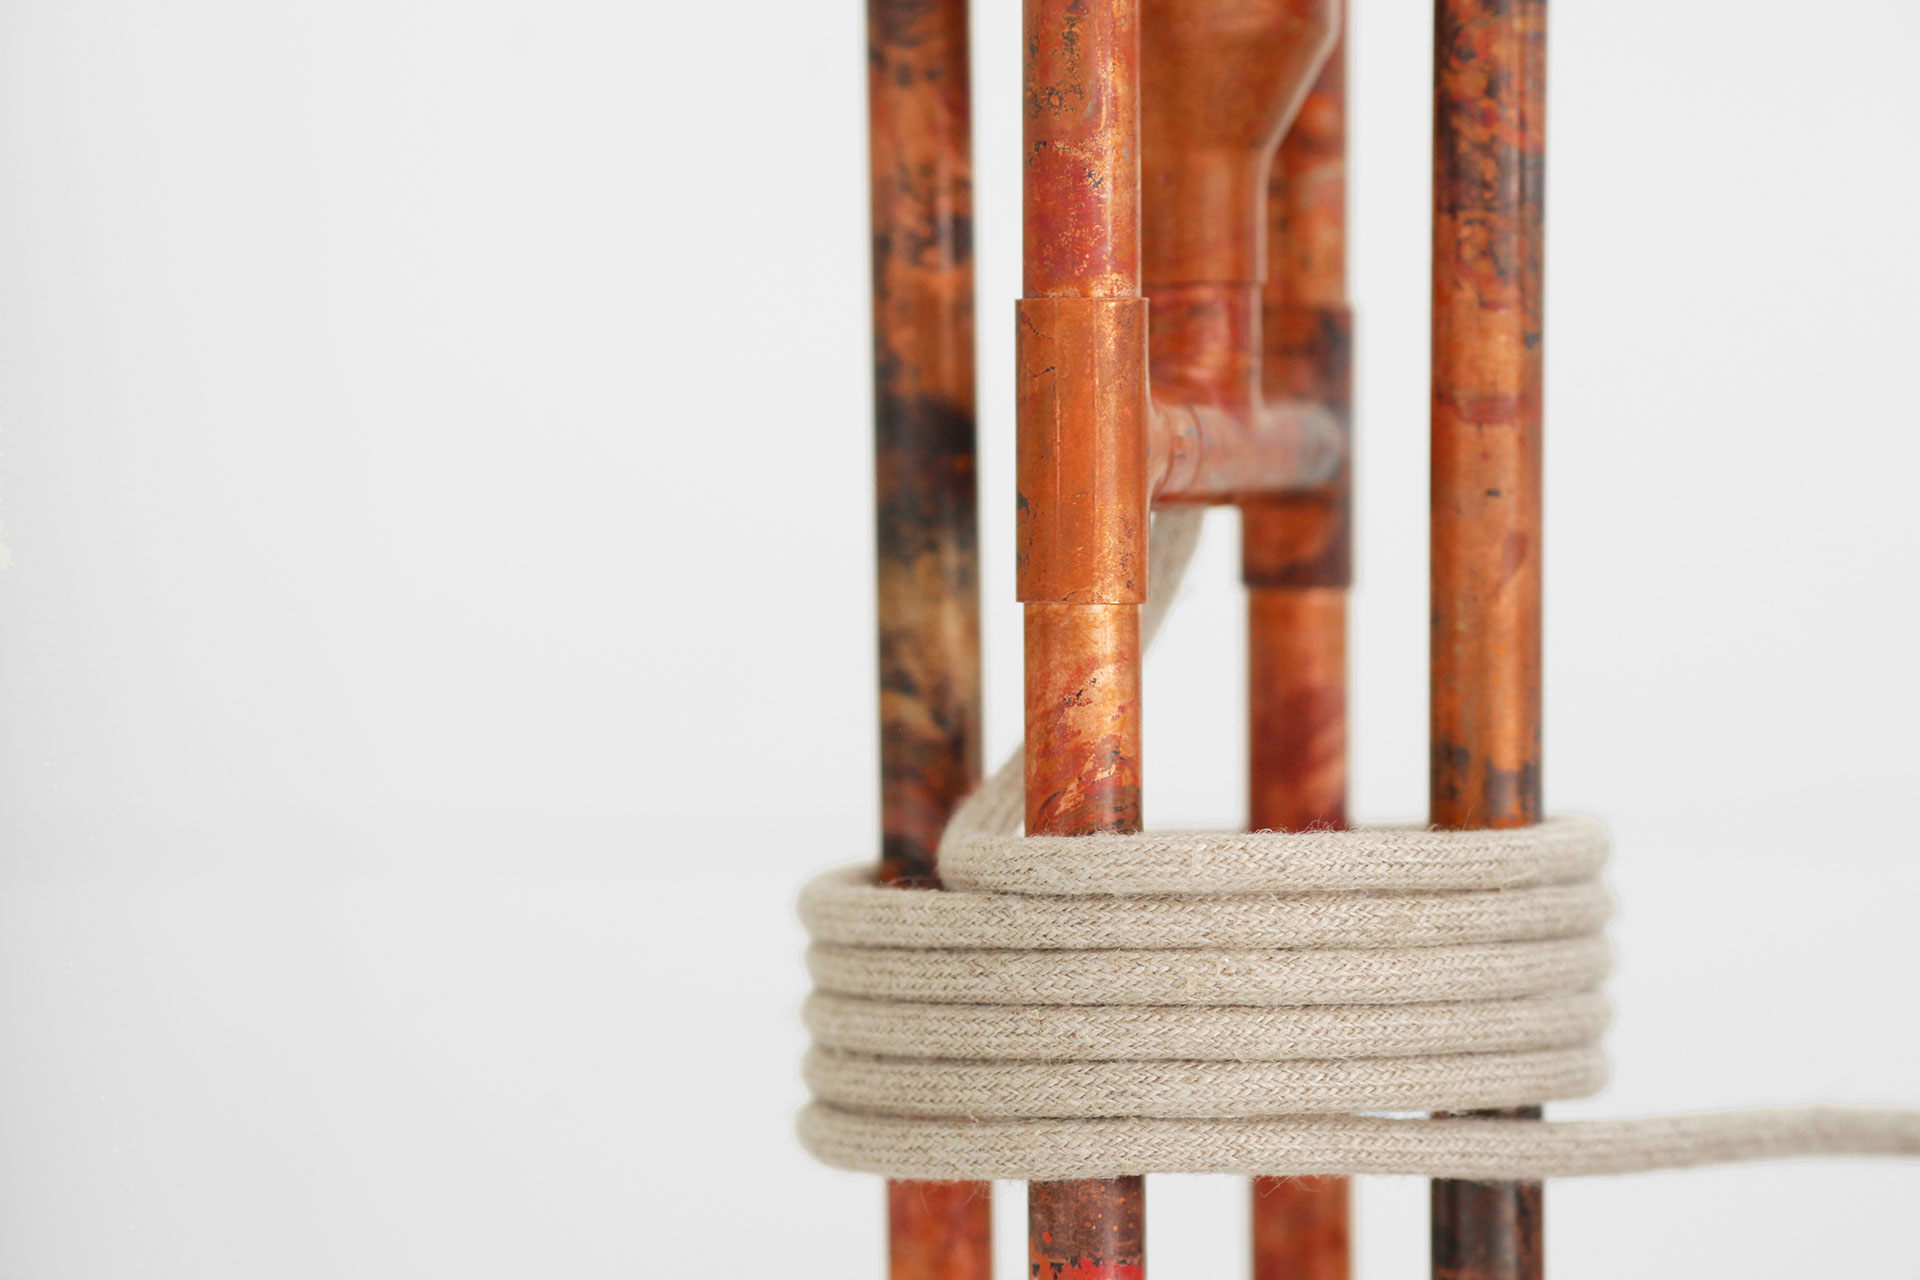 Designer table lamp in aged copper patina